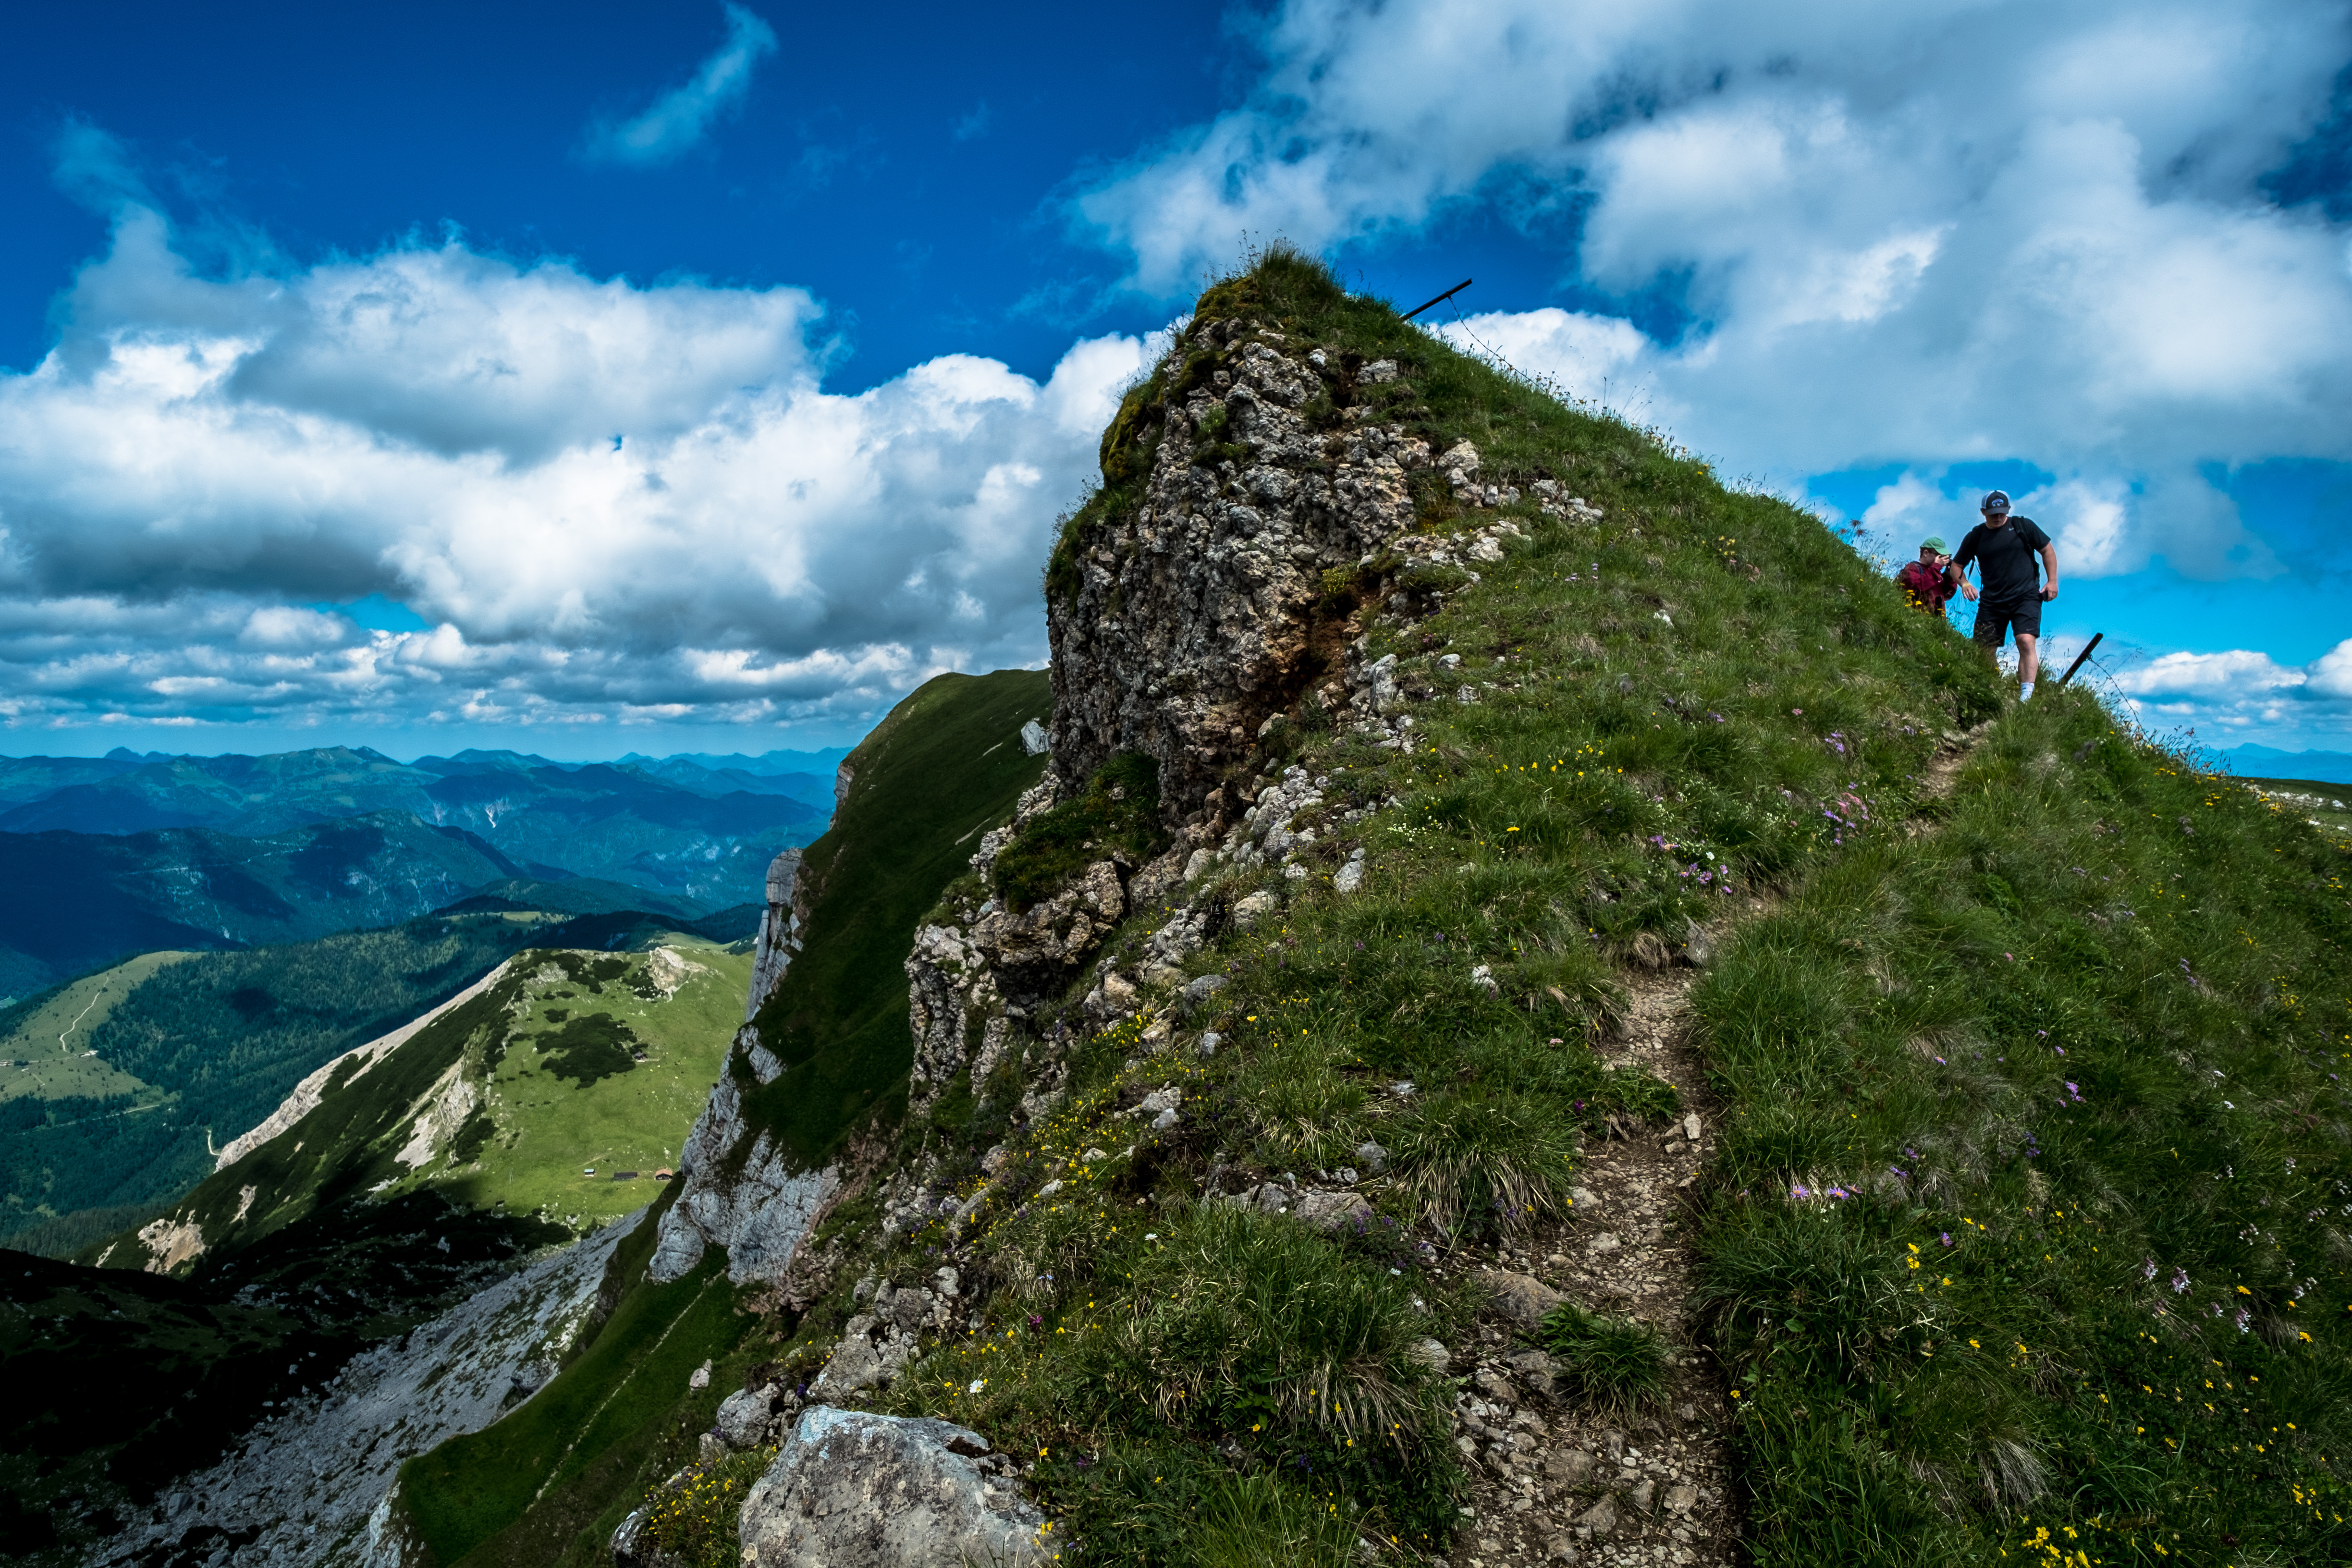 Iw 2014 08 sports wagering guidelines that you cana t afford to overlook -  Ridges That Make You Lust For The Heavens The Steep Hills Of Austria Are More Muscular And Earthy Covered In Flowers And Green Meadows To The Top